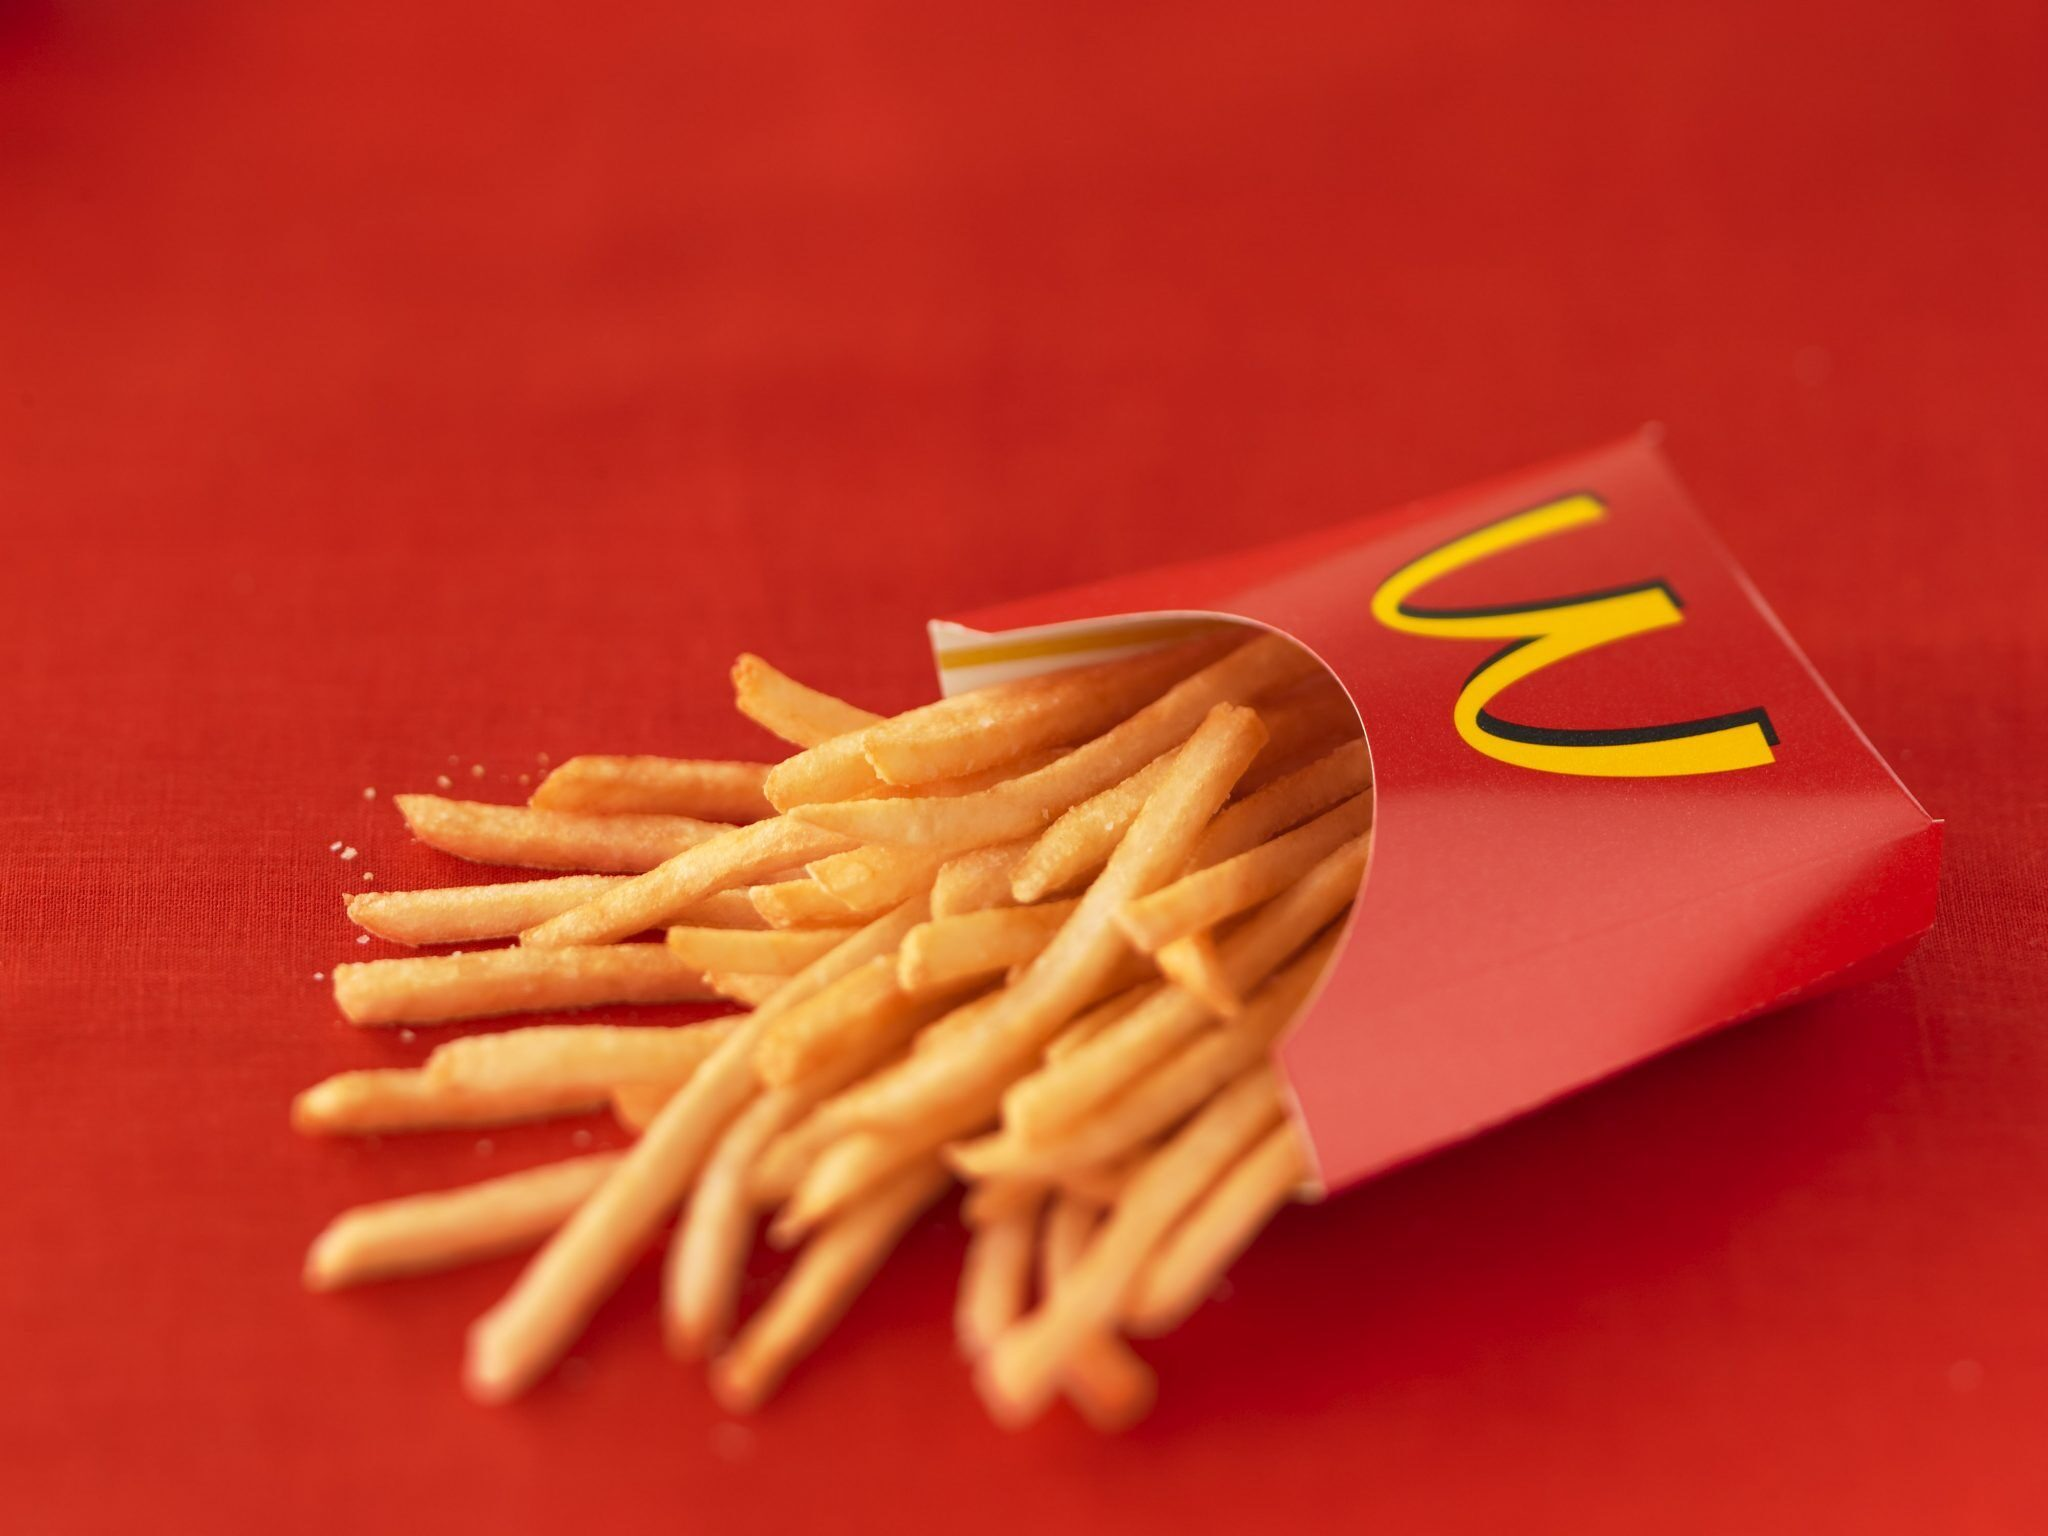 mcdonalds-french-fries-9738242